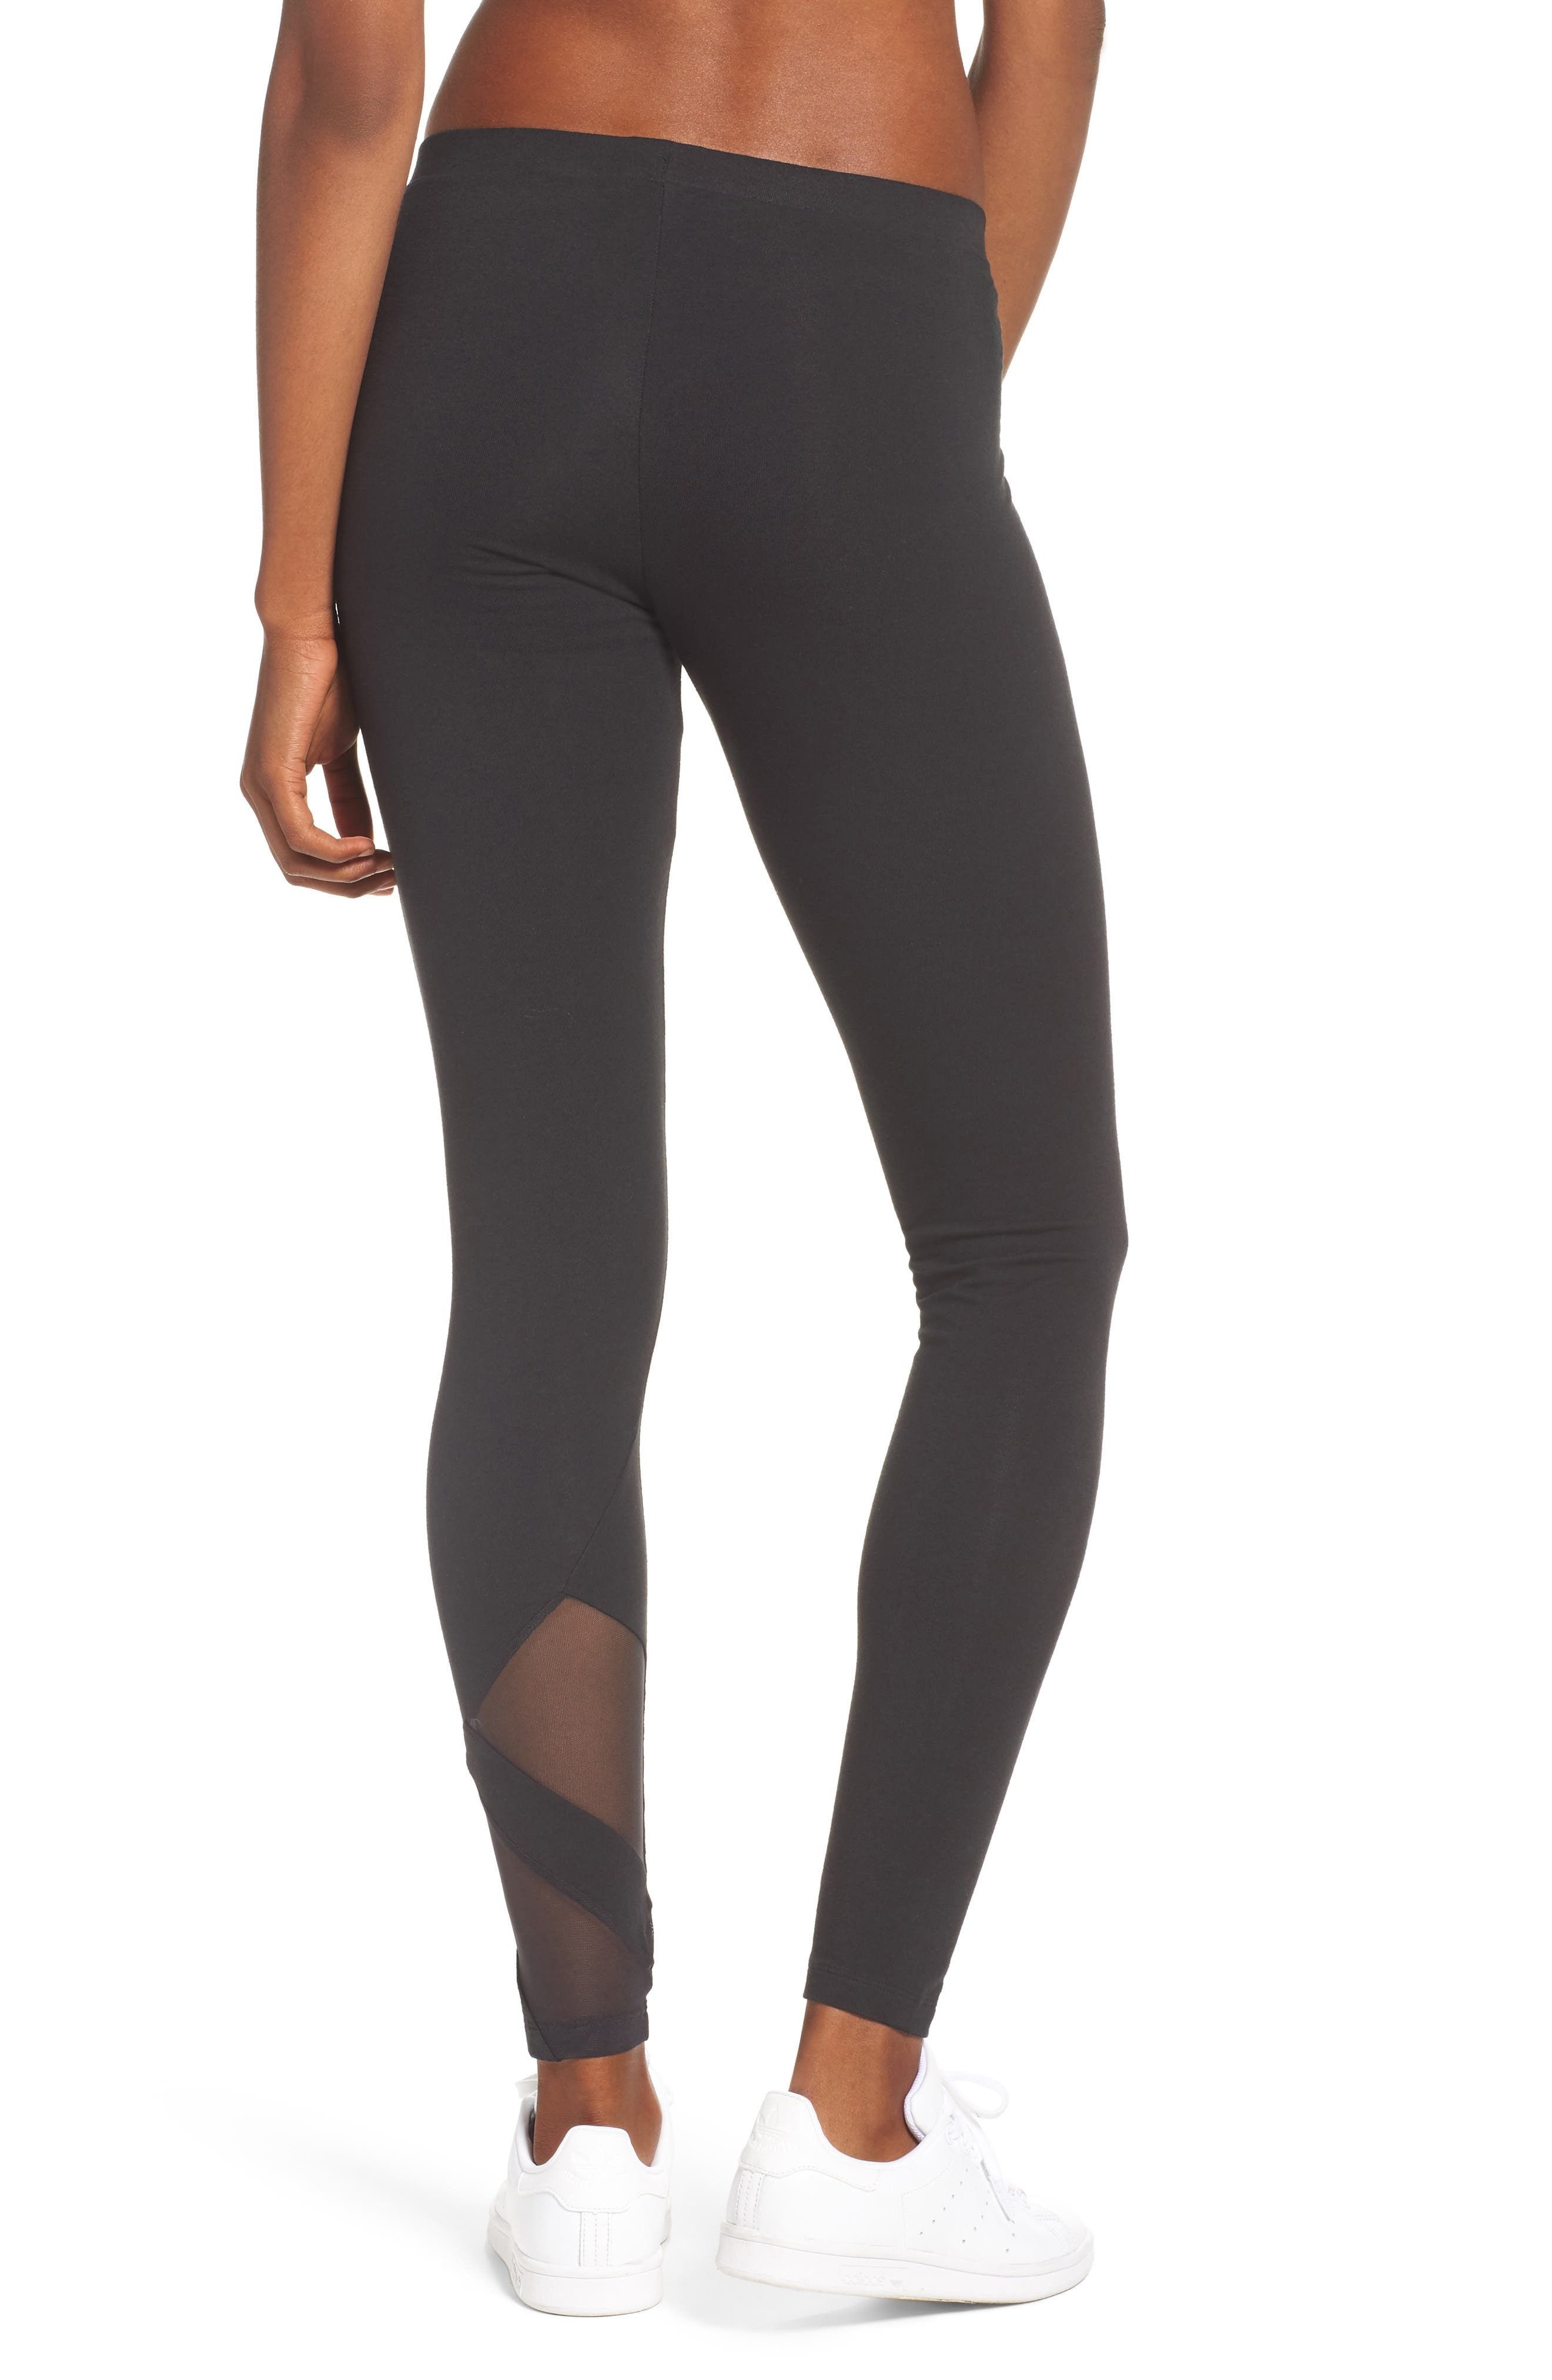 EQT Asymmetrical Leggings,                             Alternate thumbnail 2, color,                             Black/ Black